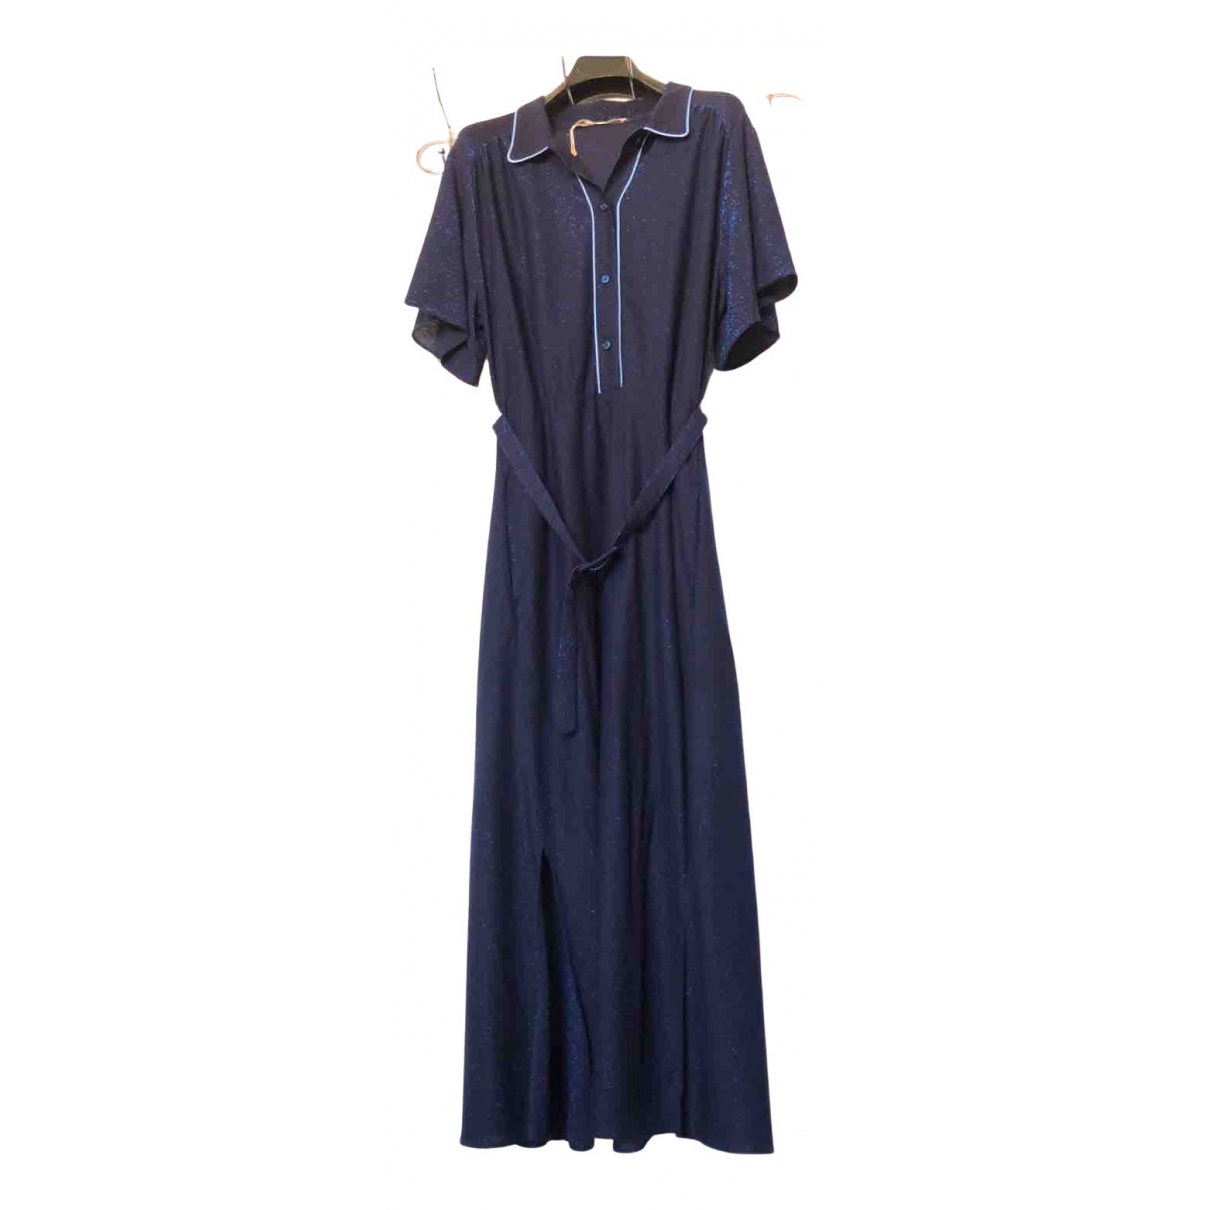 Golden Goose \N Kleid in  Blau Polyester